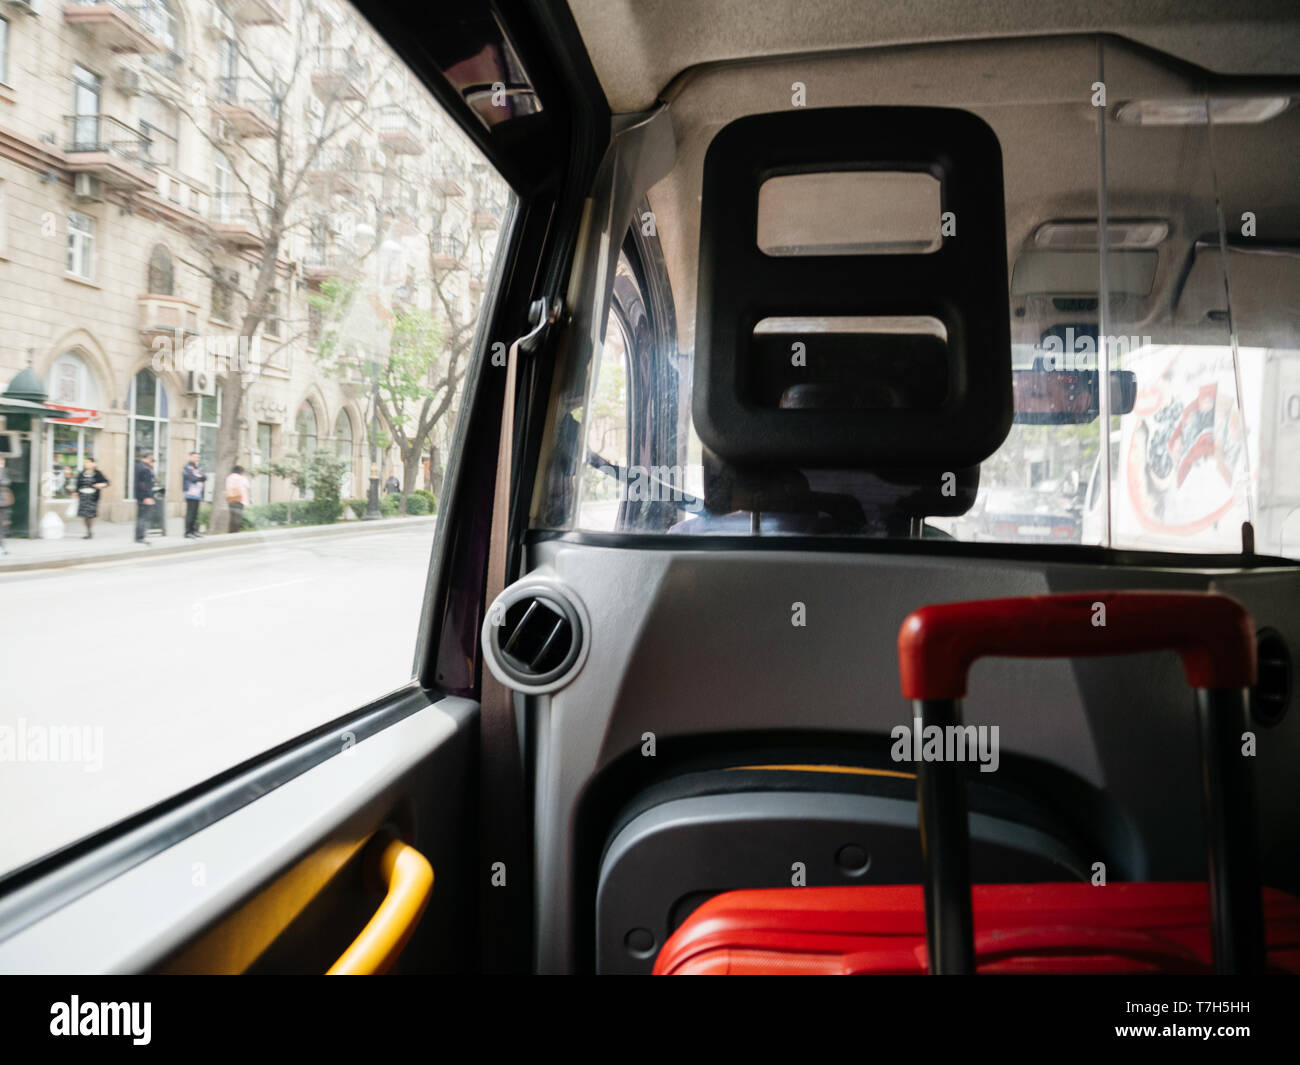 Defocused view from hackney carriage taxi cab in Baku Azerbaijan with red luggage inside and street view with people silhouette - Stock Image